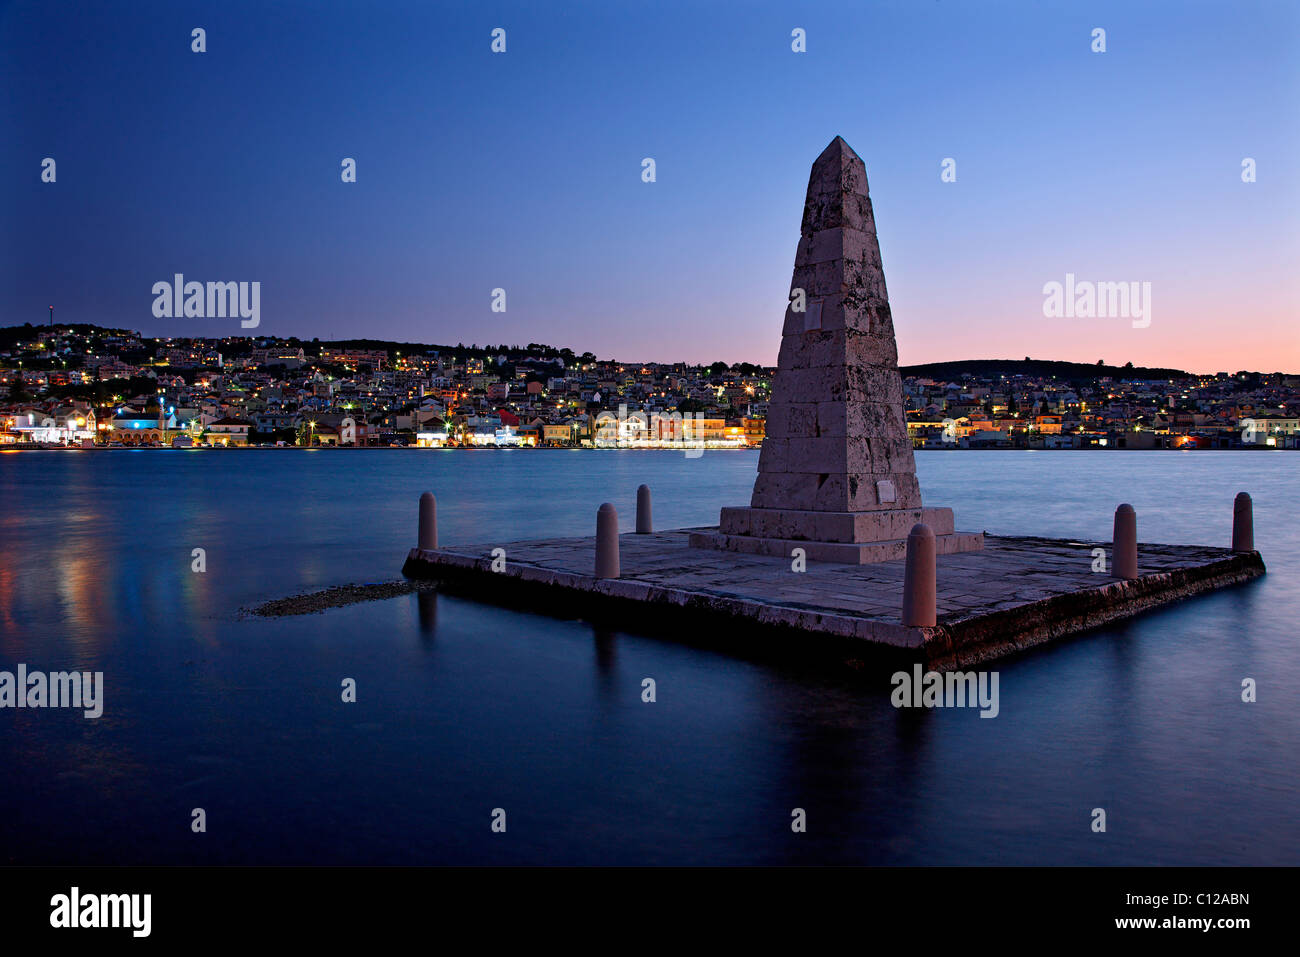 Argostoli town, capital of Kefalonia island and the so-called 'British obelisk' in front. - Stock Image